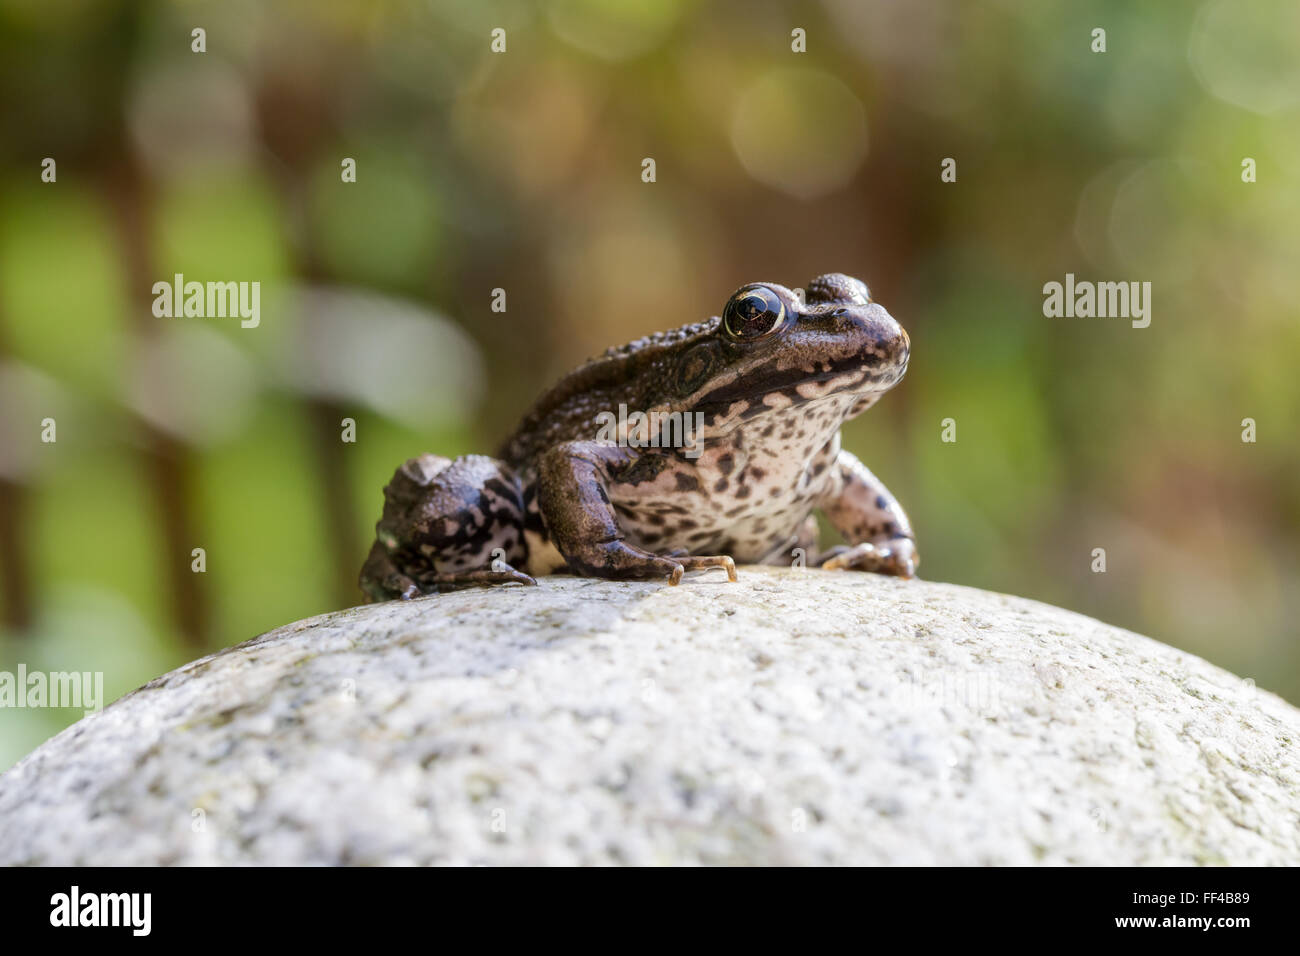 Common water frog on a stone in the autumn sun - Stock Image